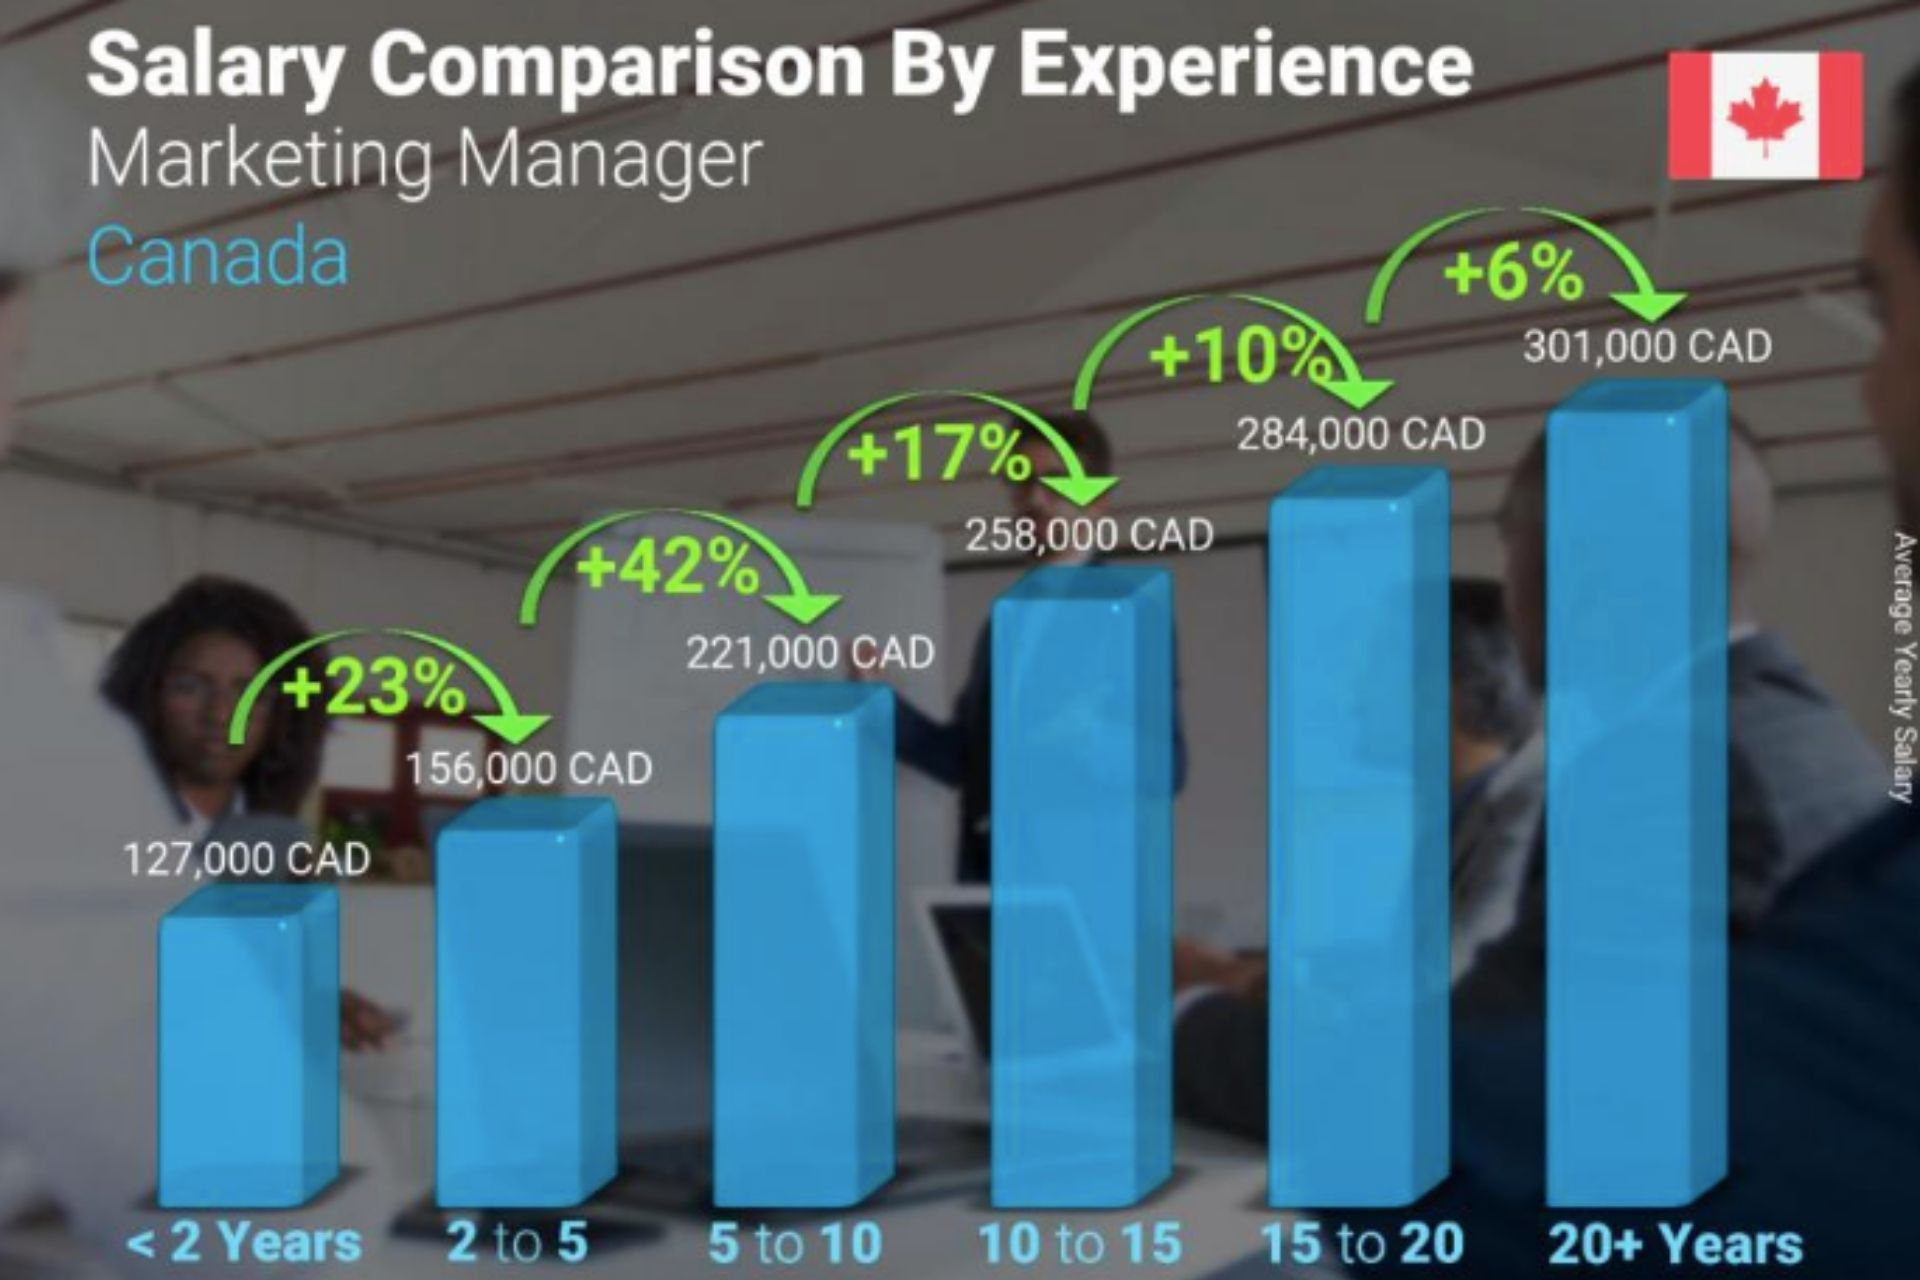 Marketing Manager Recruiter - annual Marketing Manager salary comparison by years of experience